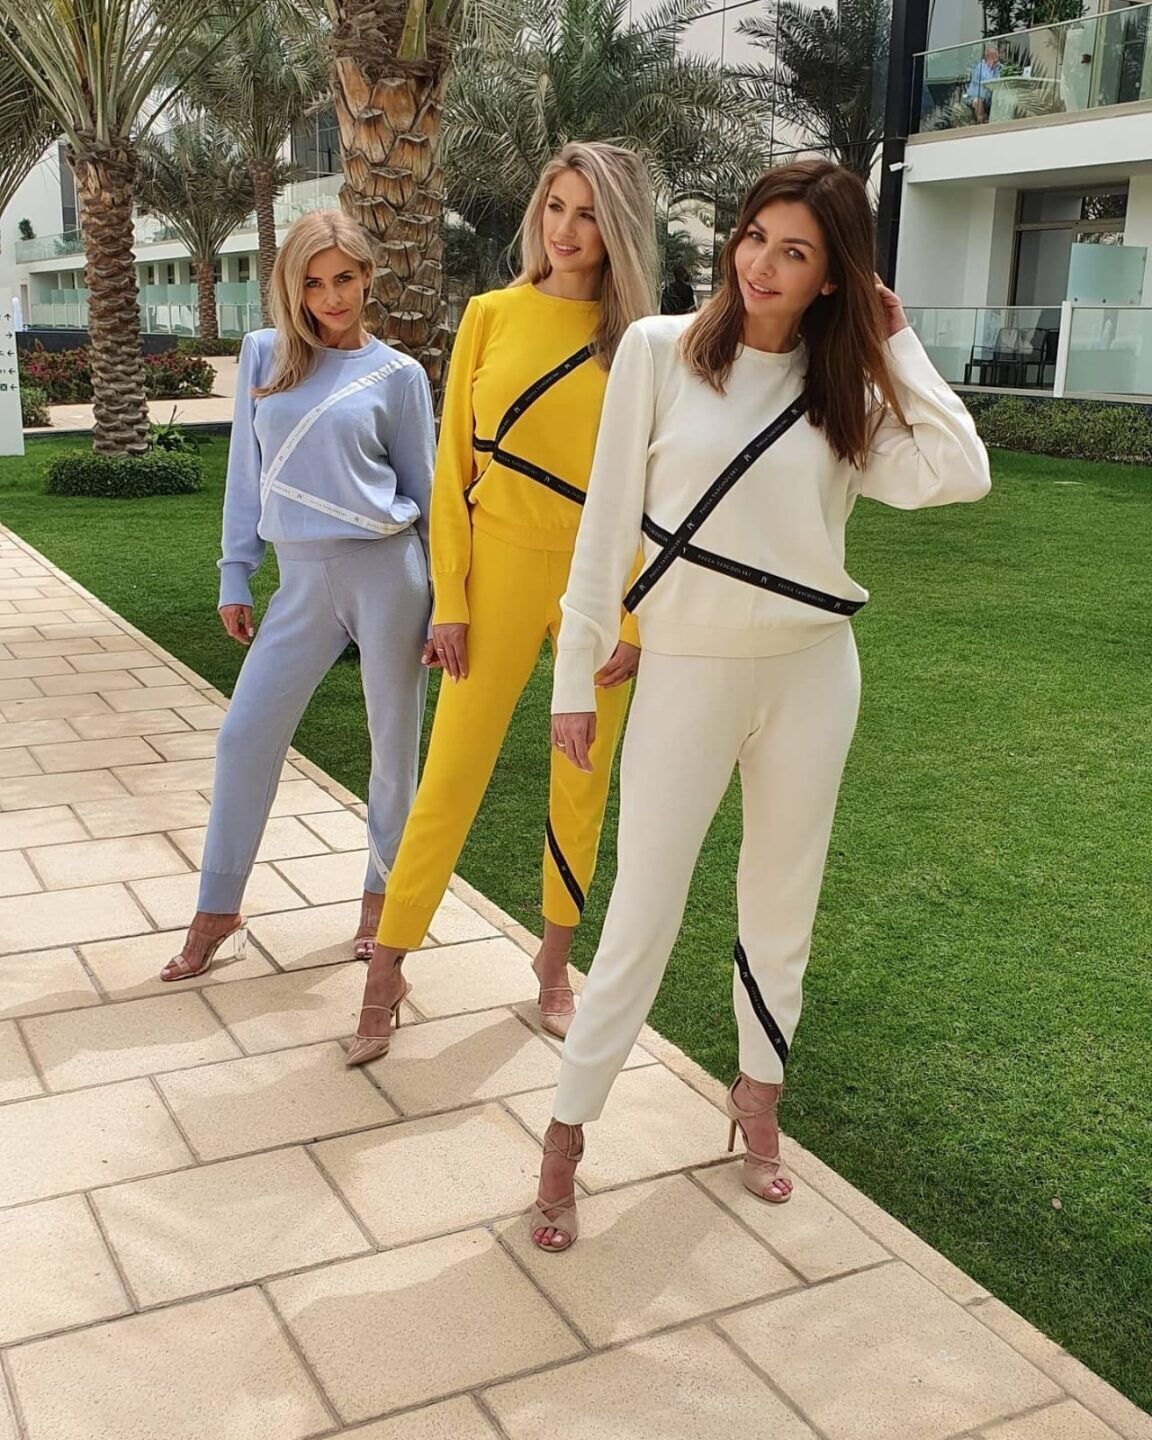 Knitted tracksuits